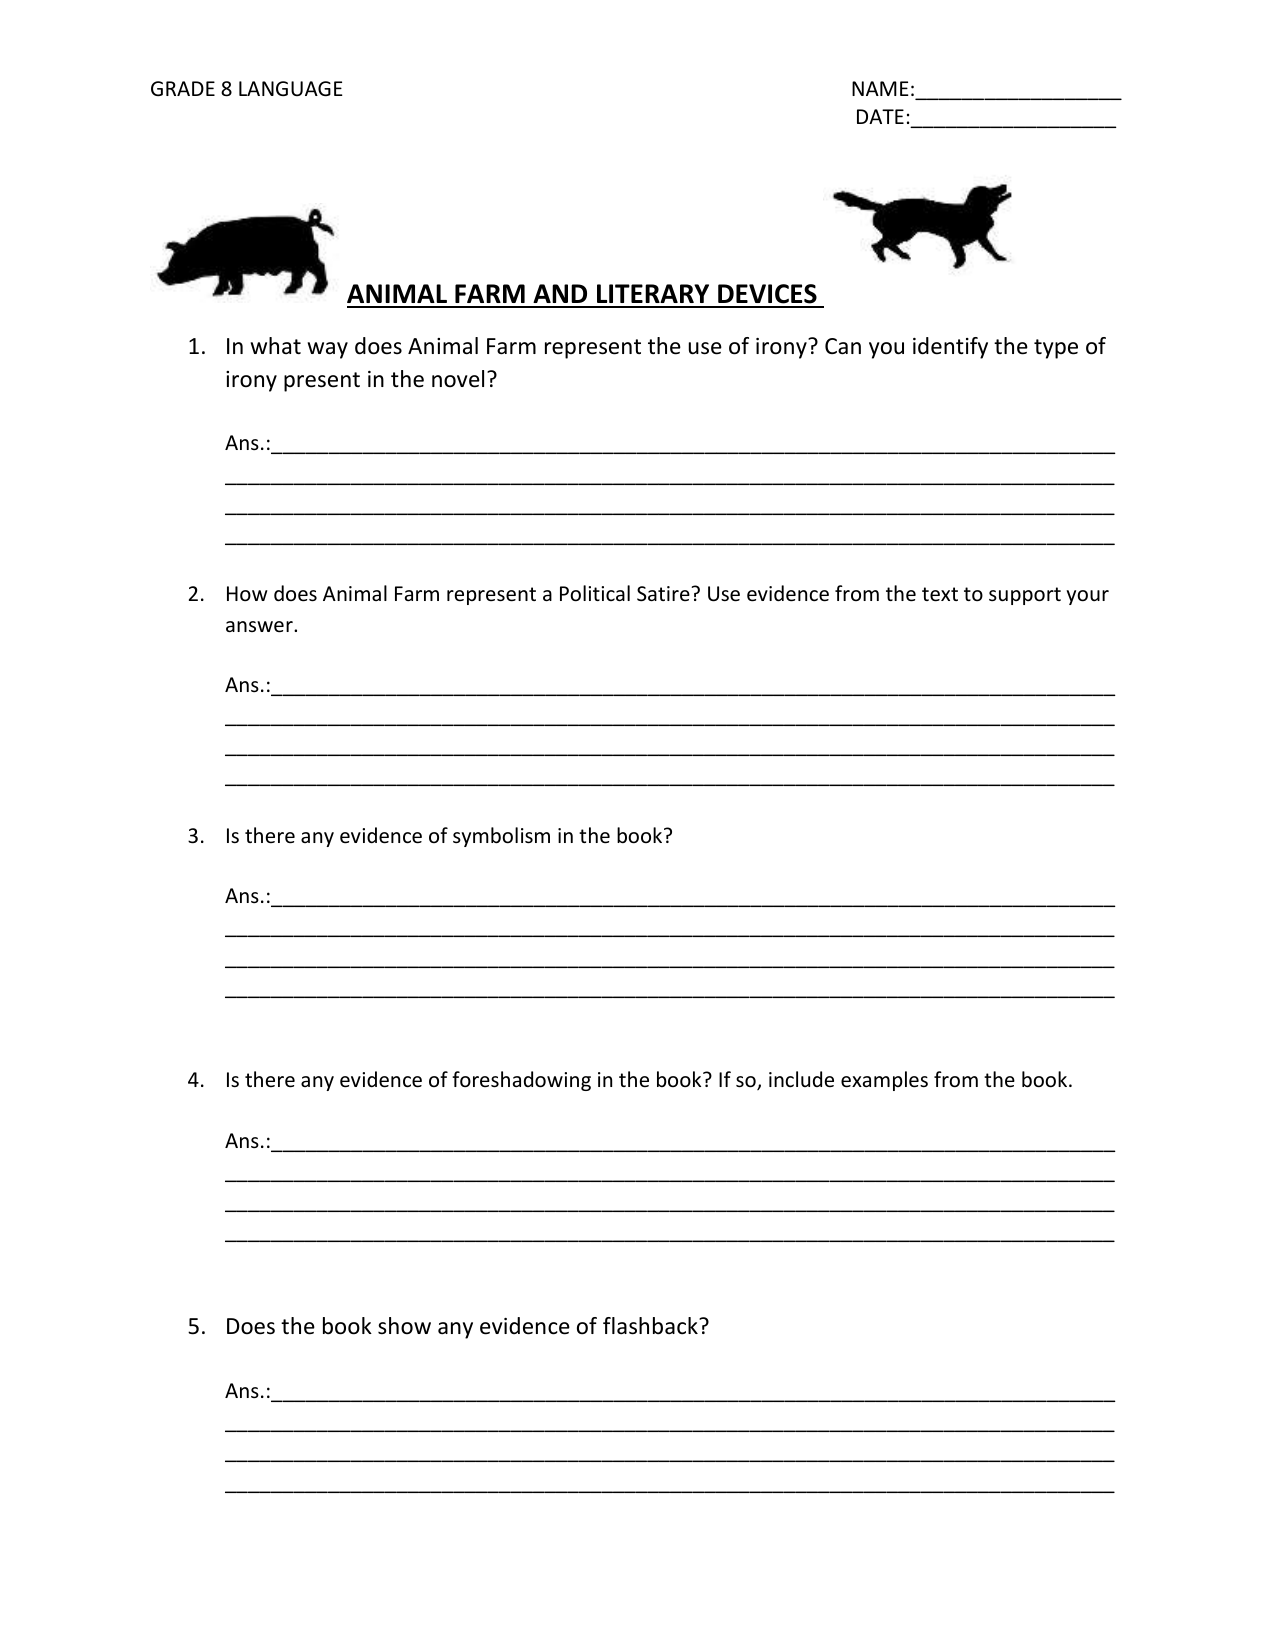 Animal Farm And Literary Devices